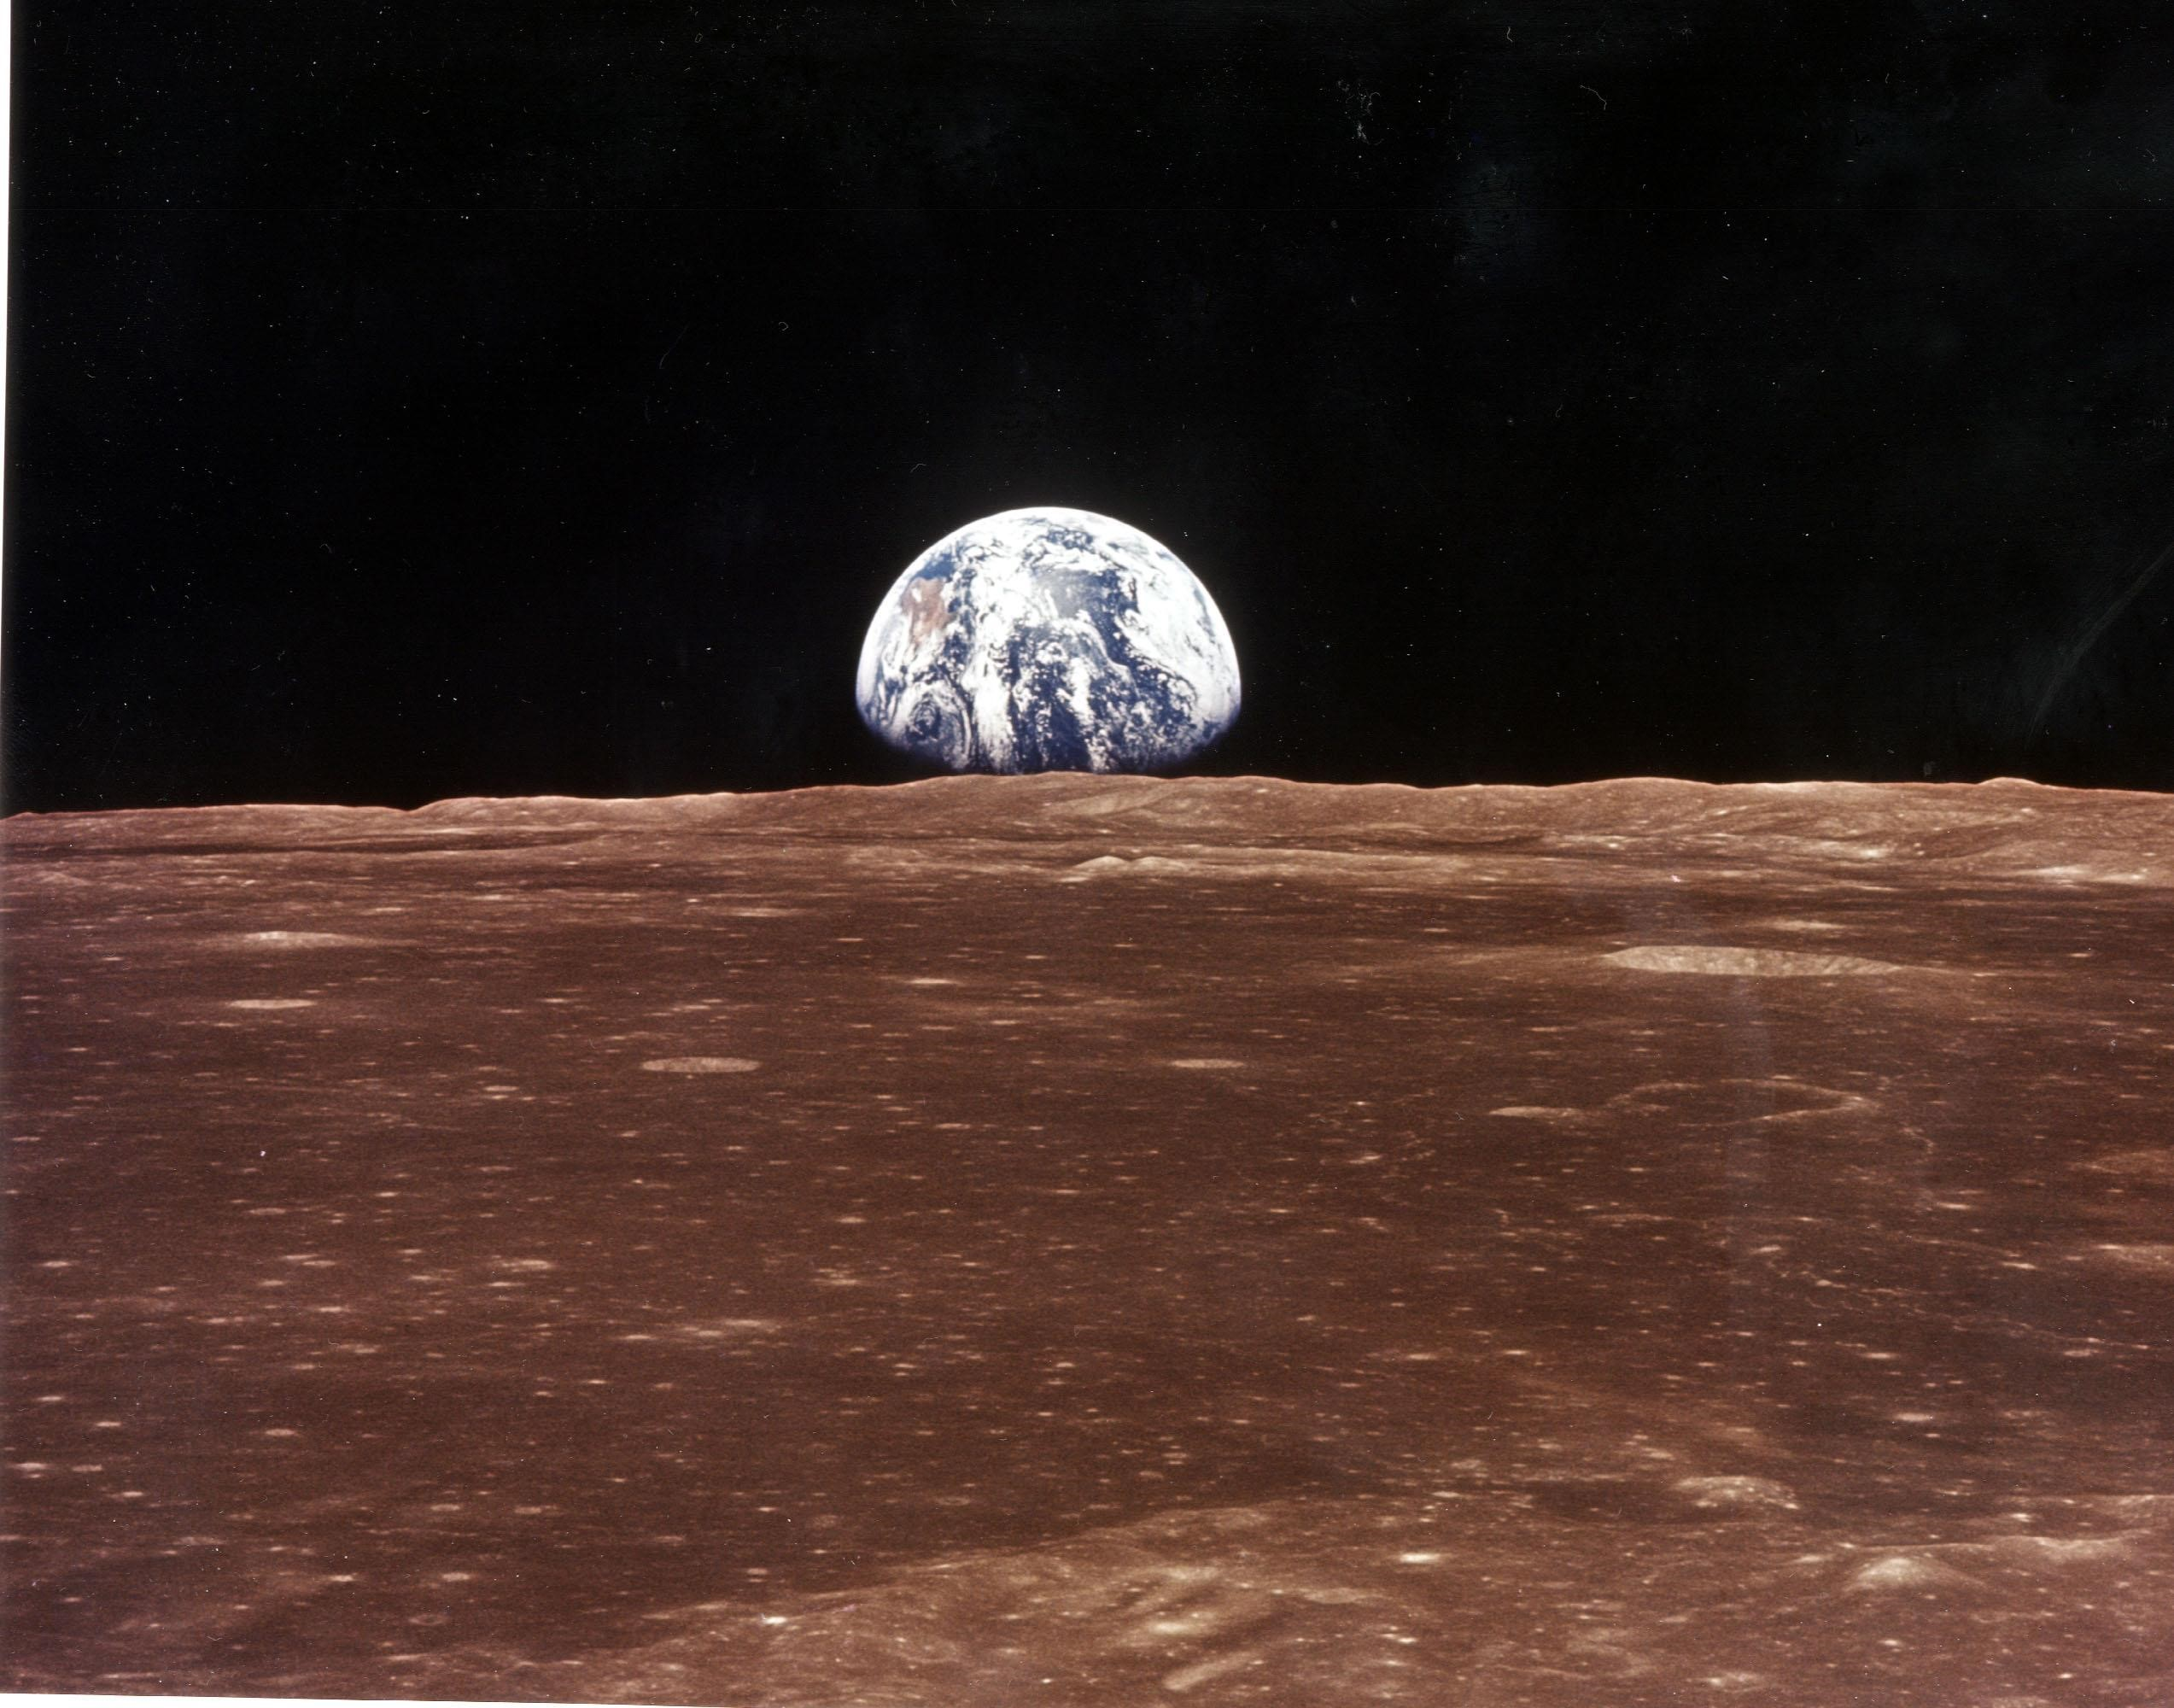 A photo taken by astronauts from NASA Apollo 11 of Earth from the Moon